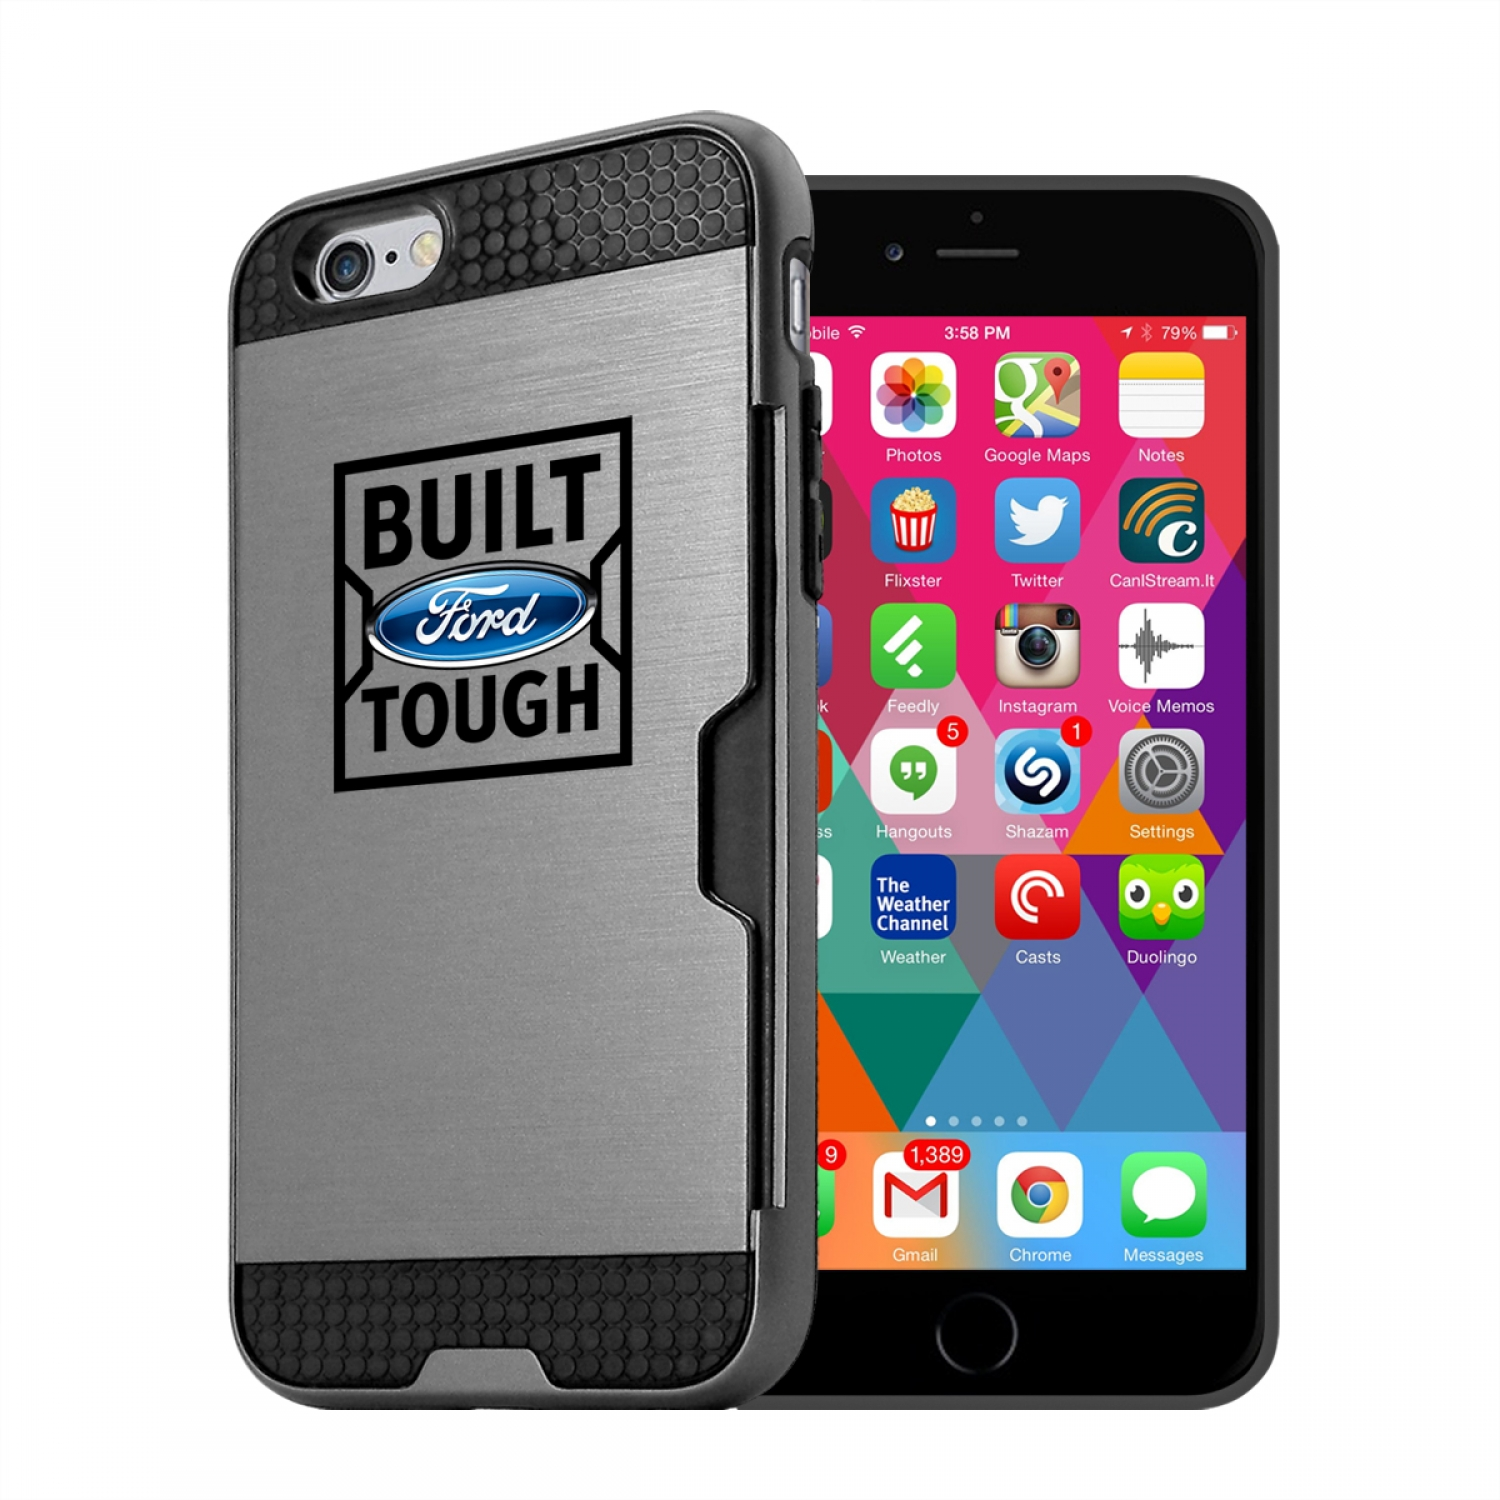 Ford Built Ford Tough iPhone 6 6s Ultra Thin TPU Silver Phone Case with Credit Card Slot Wallet